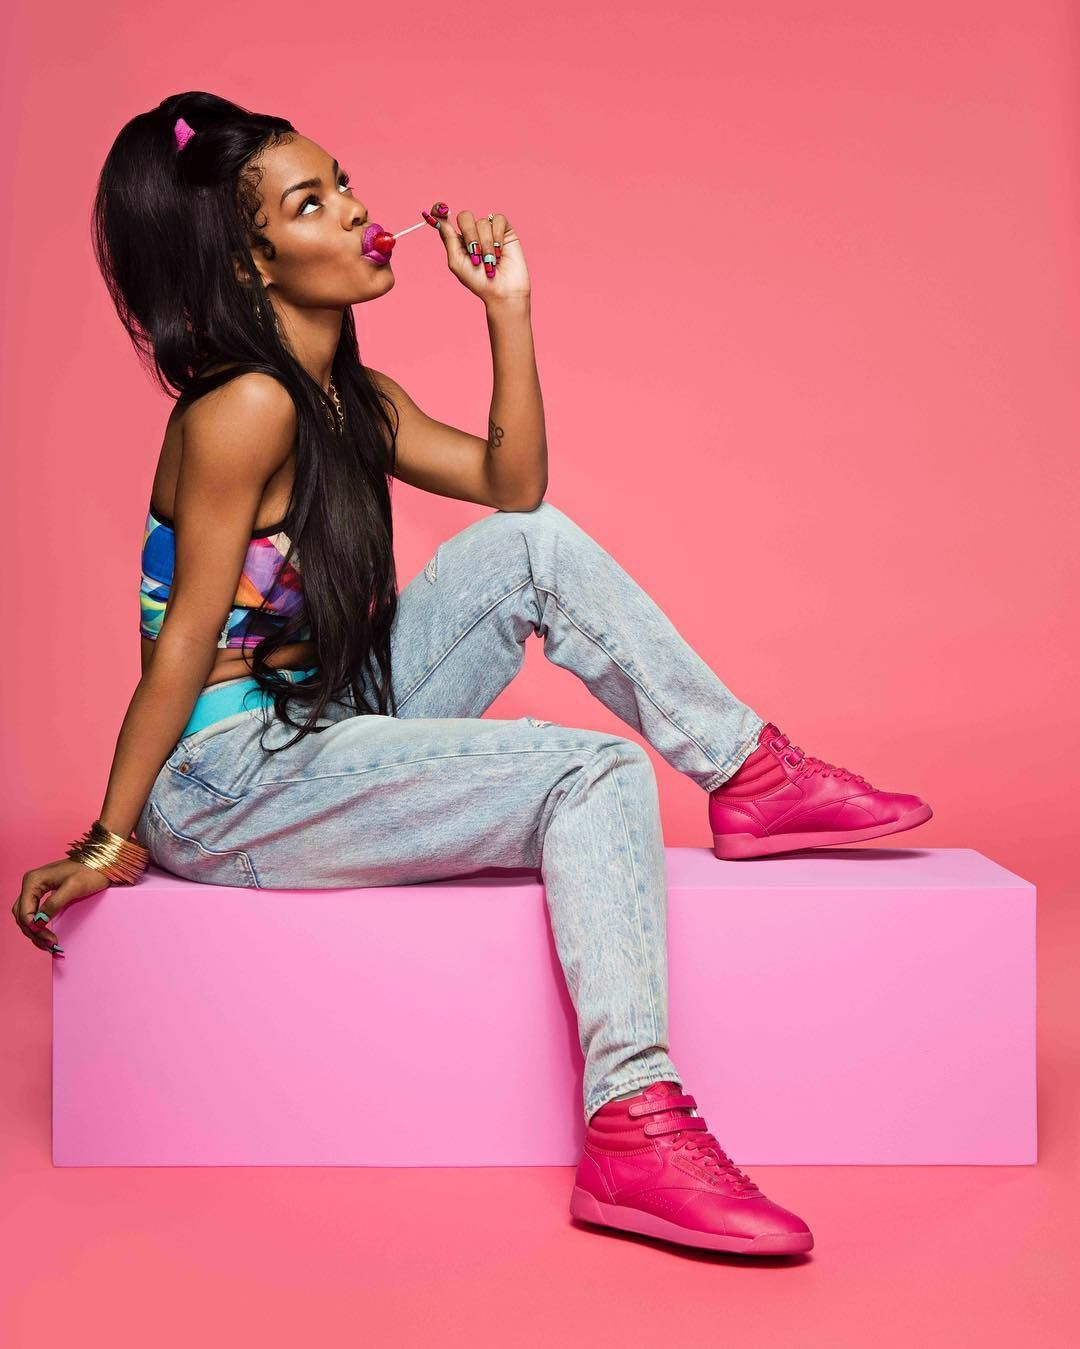 db57d68d580 Teyana Taylor Photoshoot Fresh with Reebok  Photos